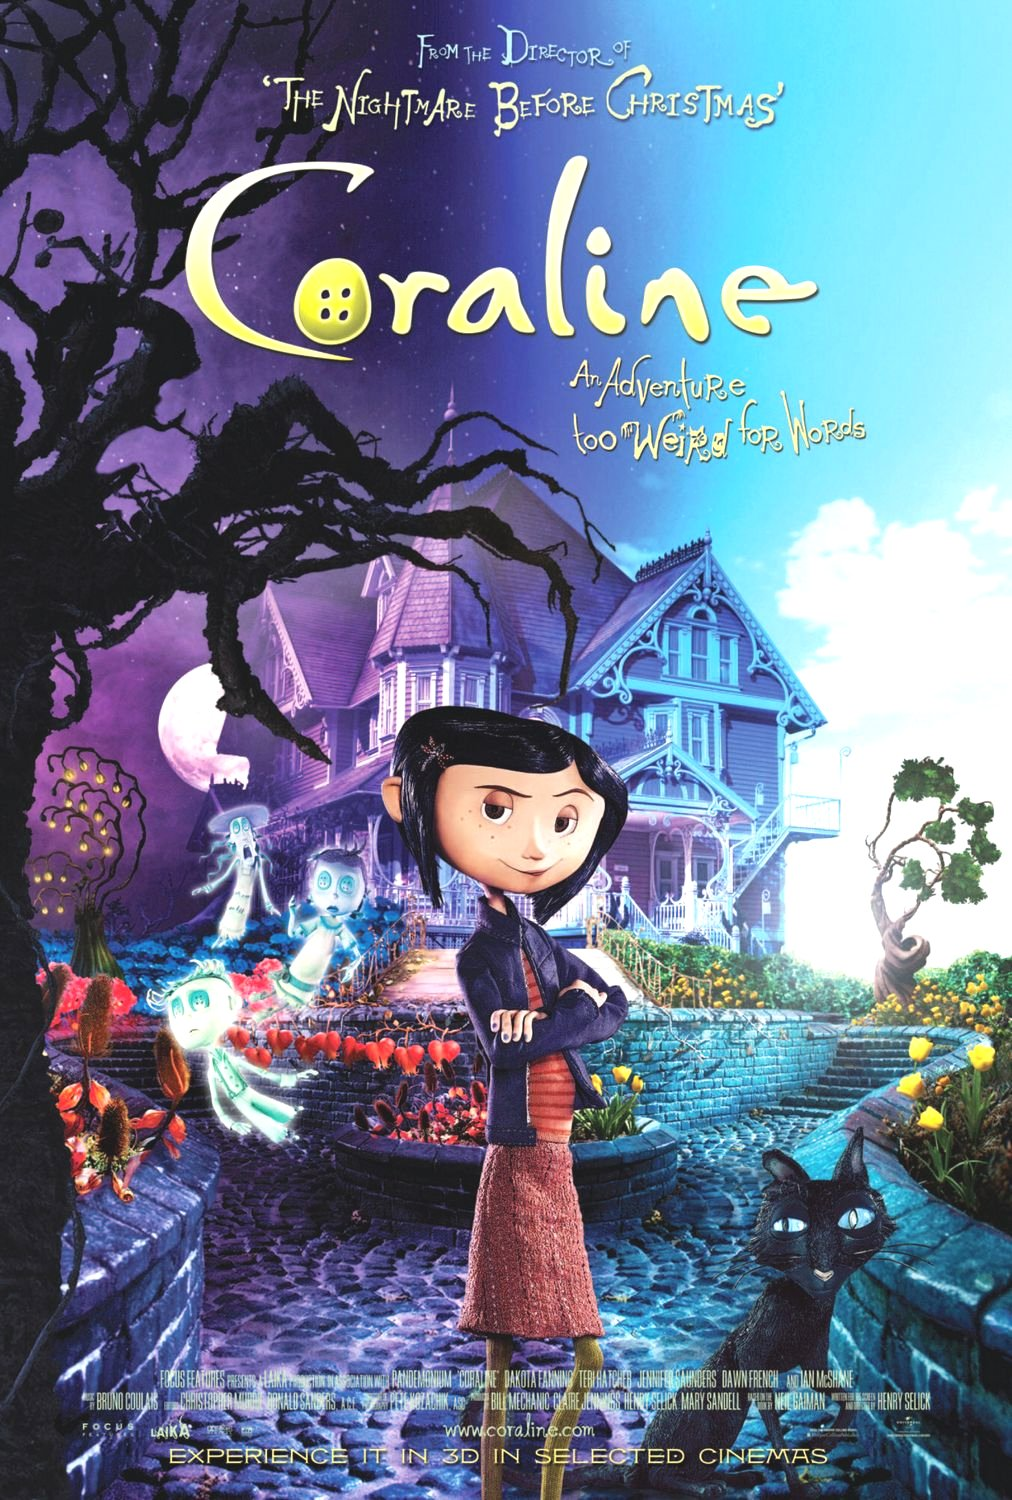 Coraline: An adventure too weird for words Google image from http://www.thefilminformant.com/wp/wp-content/uploads/2011/02/Coraline-Poster-2.jpeg